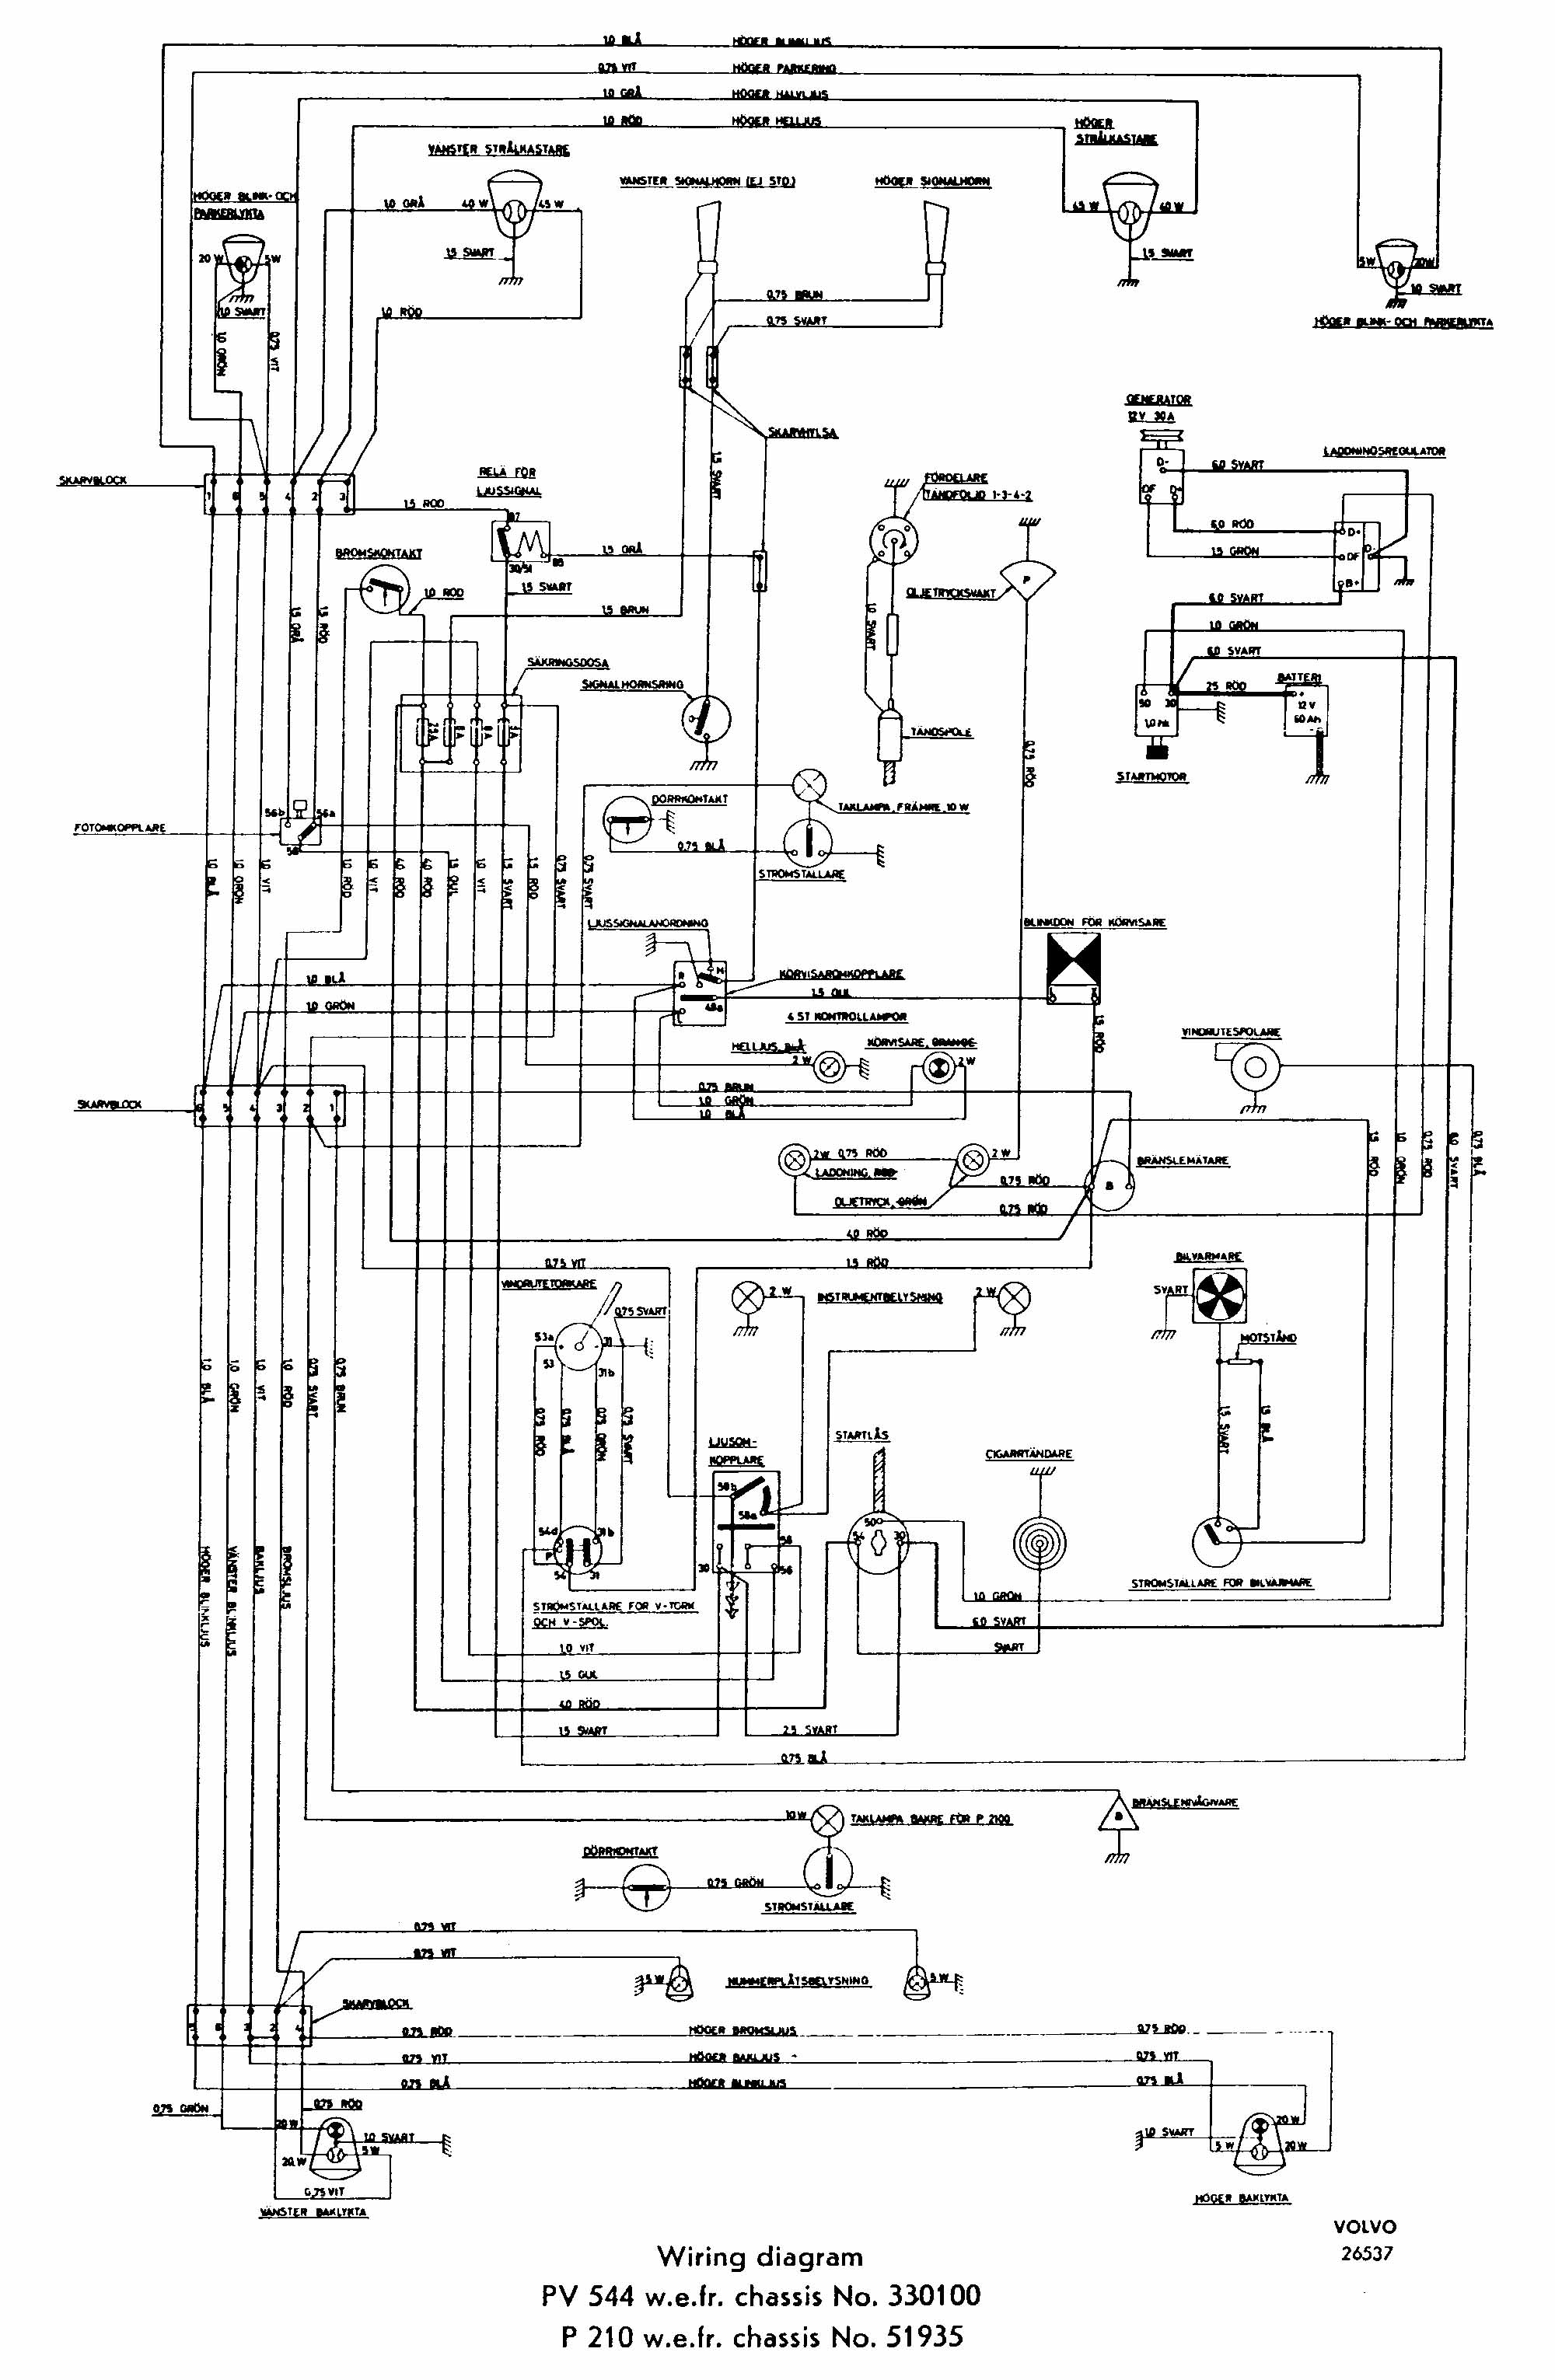 Volvo 122 Wiring Diagram Content Resource Of Wellcraft Schematics 122s Opinions About U2022 Rh Voterid Co 1994 940 Ecm Schematic